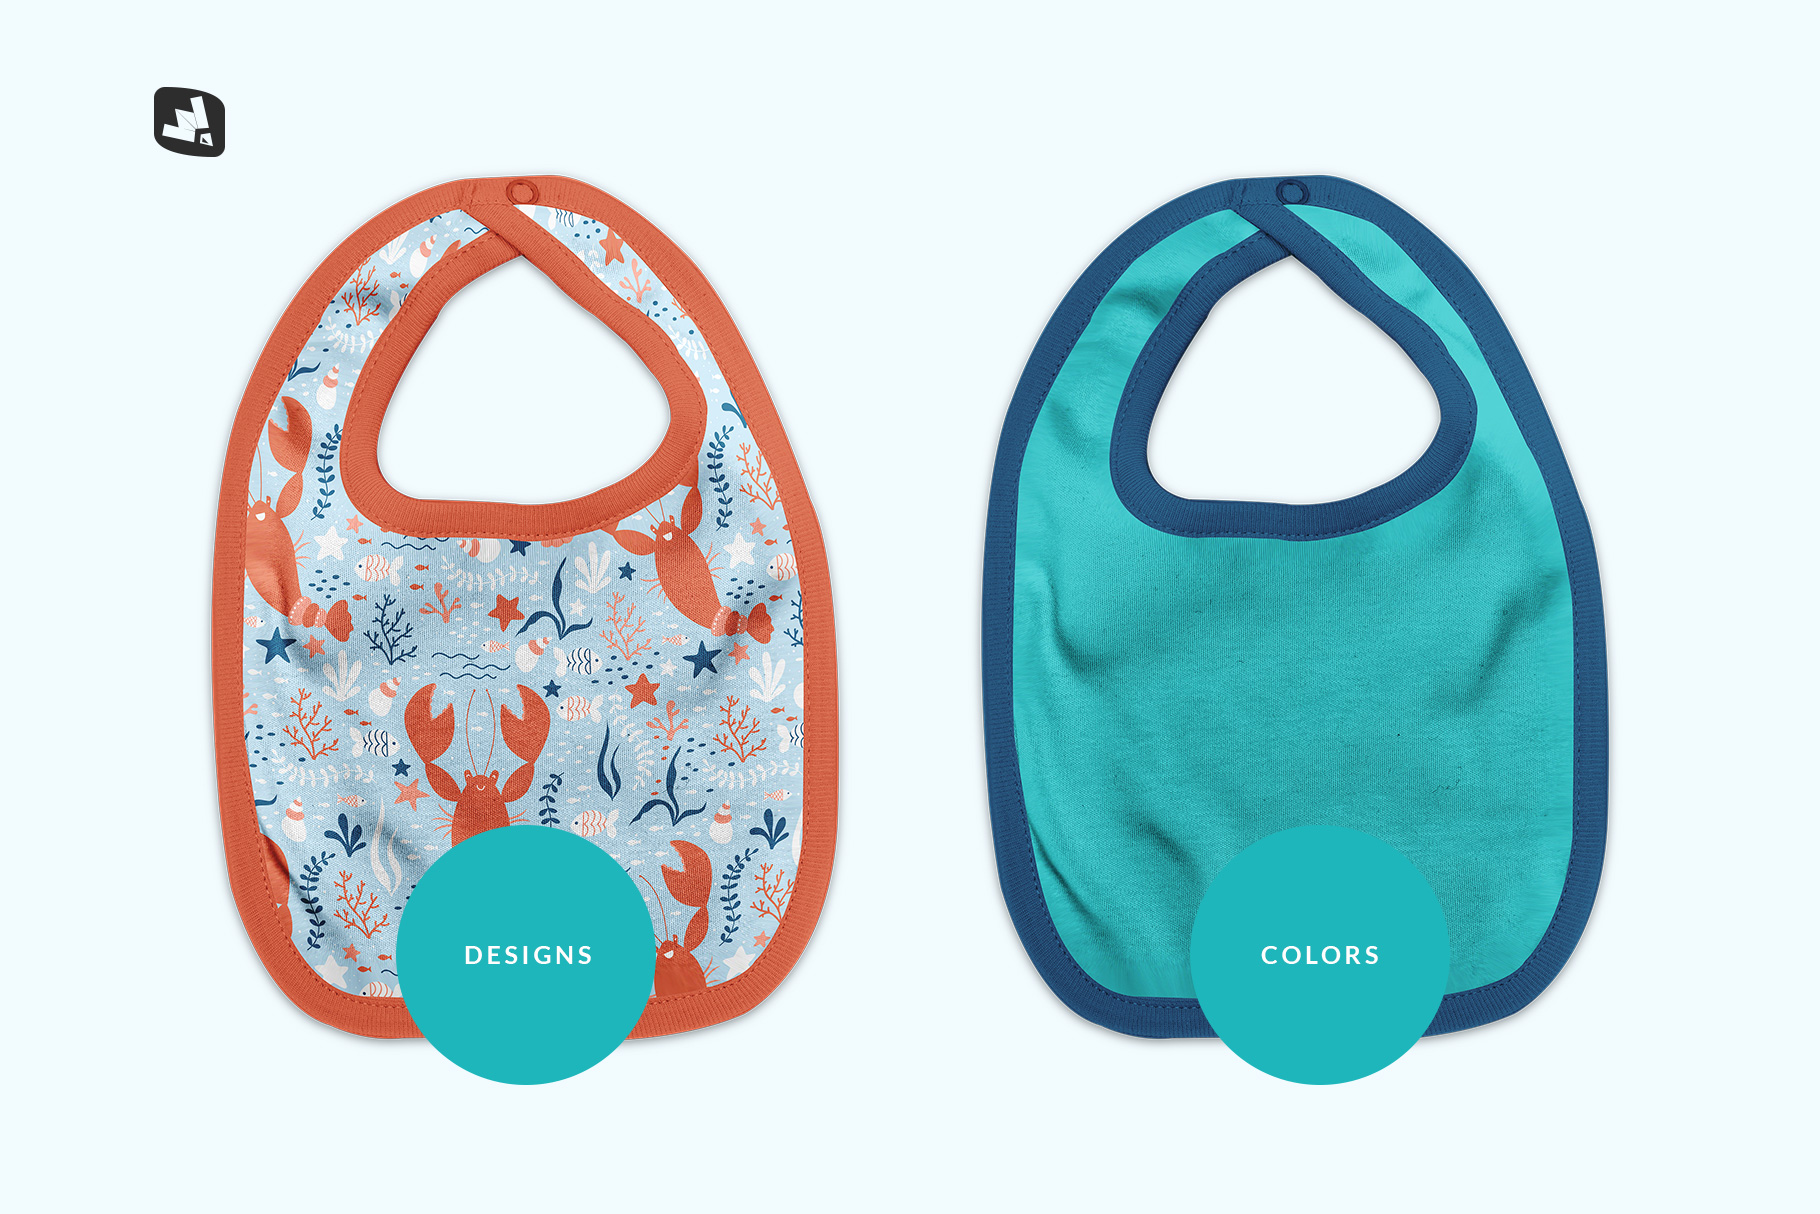 types of the top view baby bib mockup